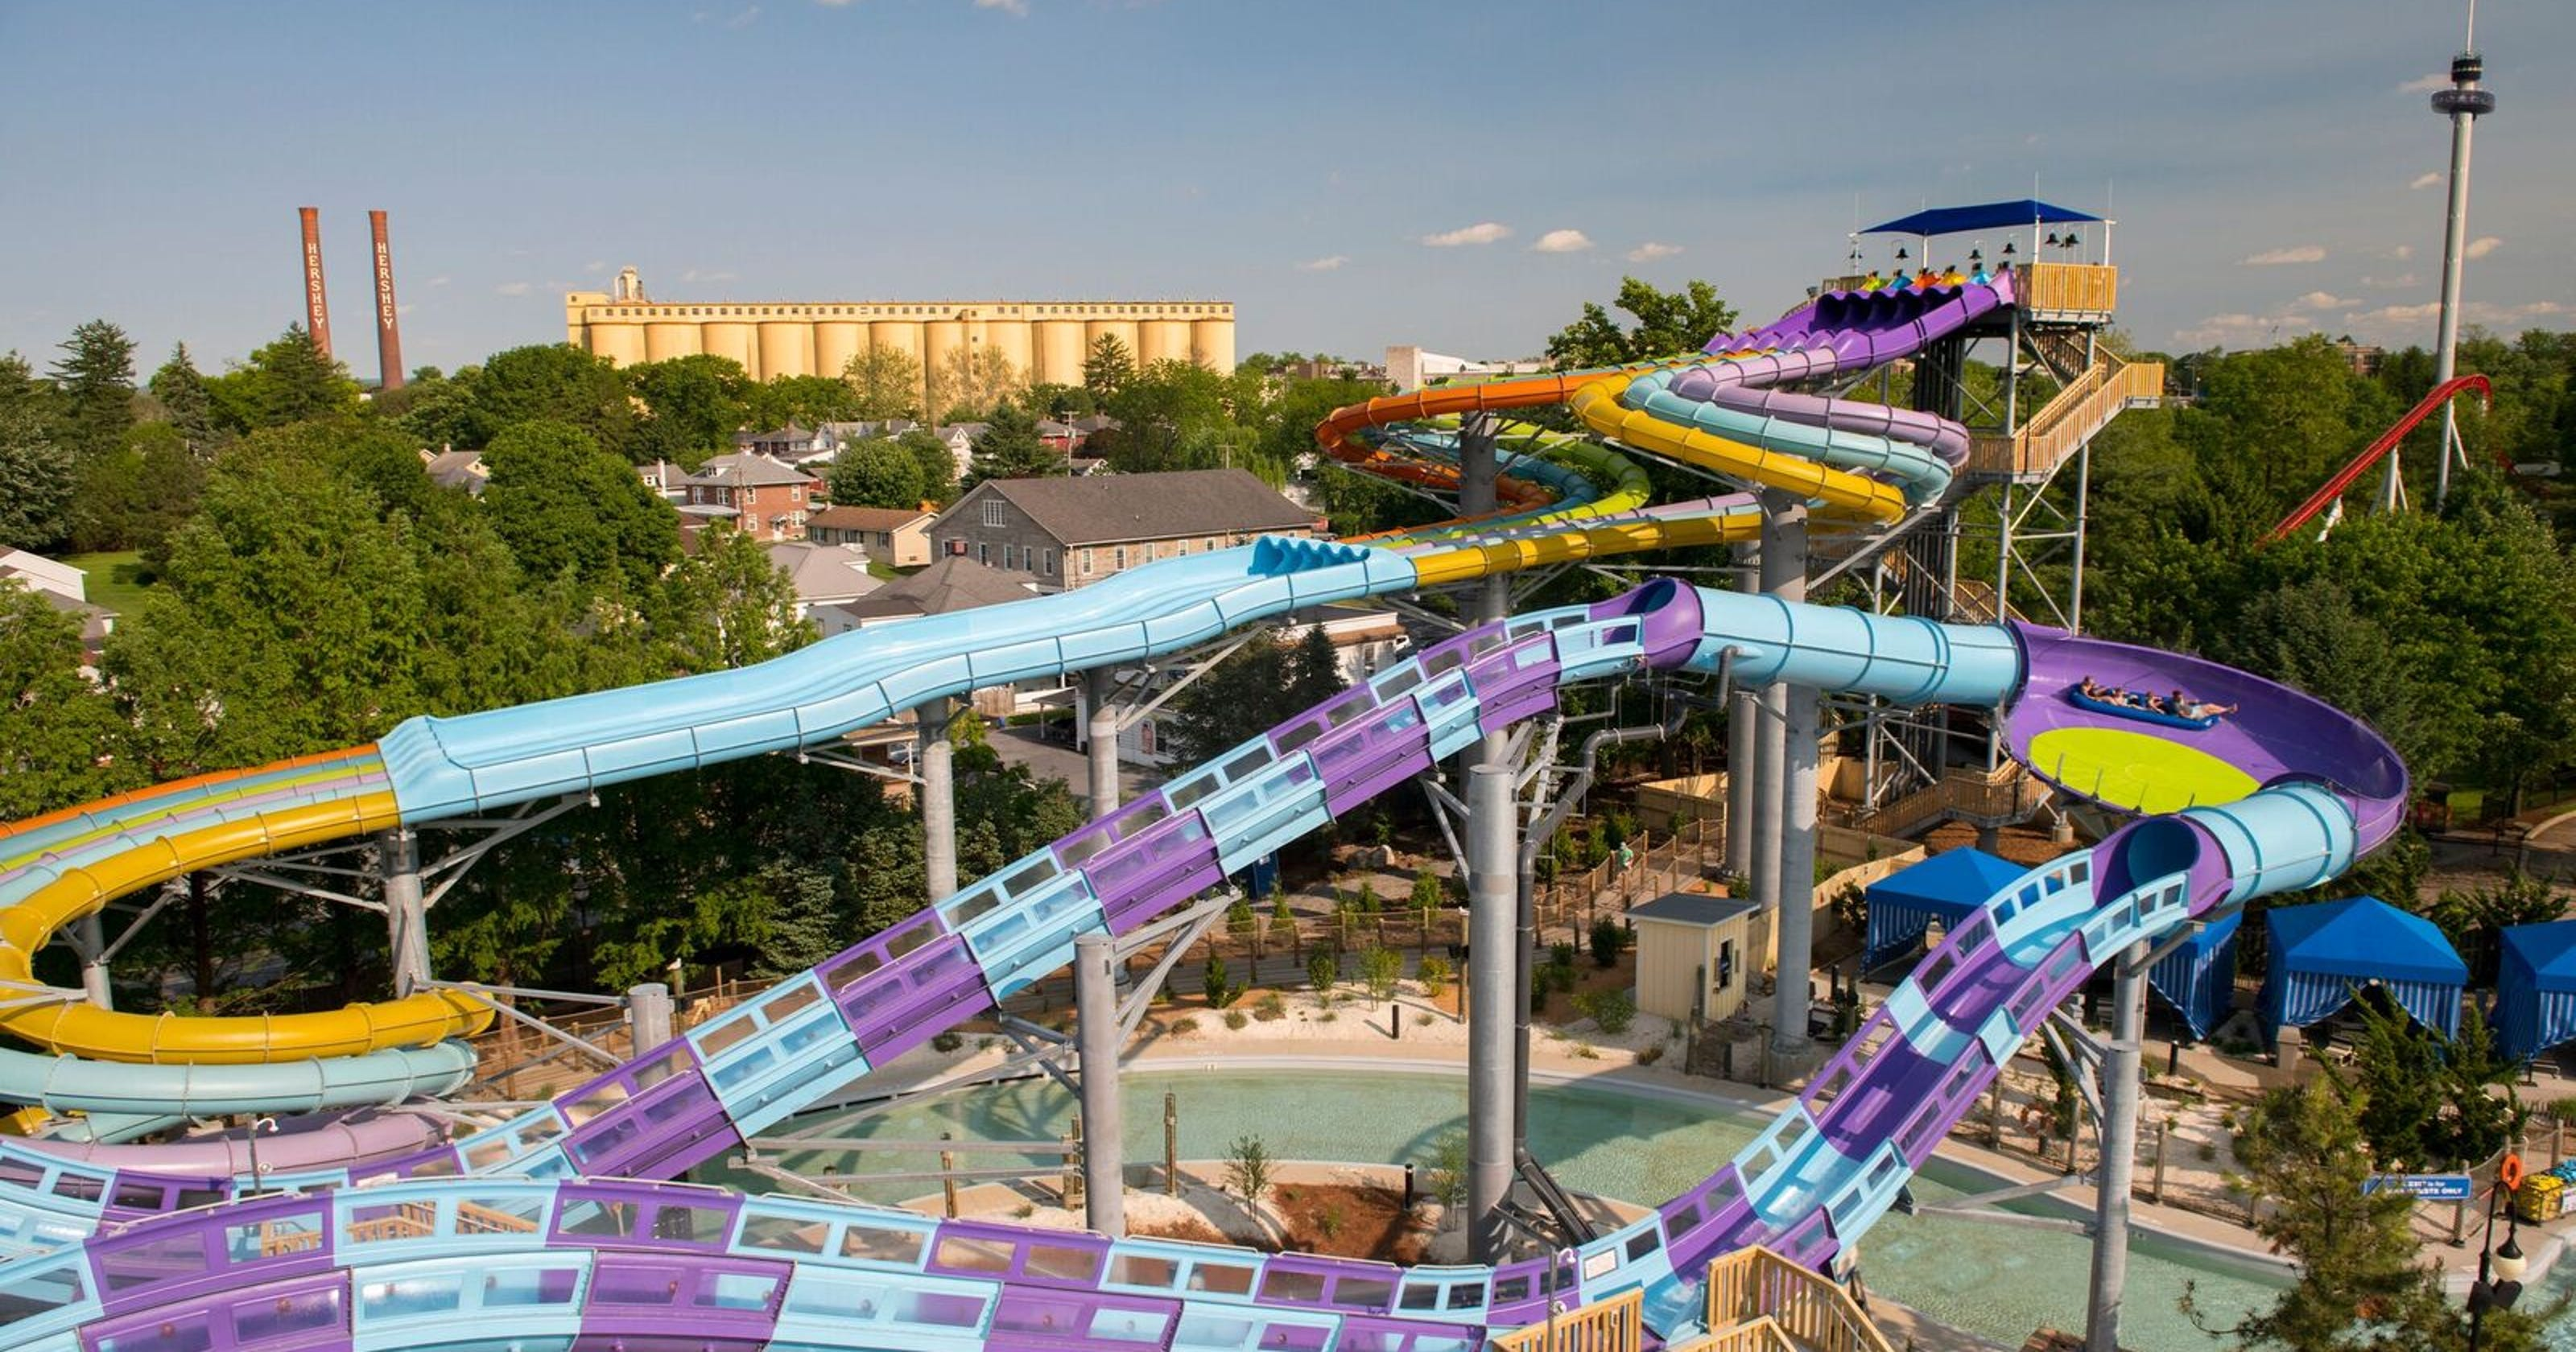 Hersheypark Expansion Plan For 23 Acres Entrance Changes By 2020